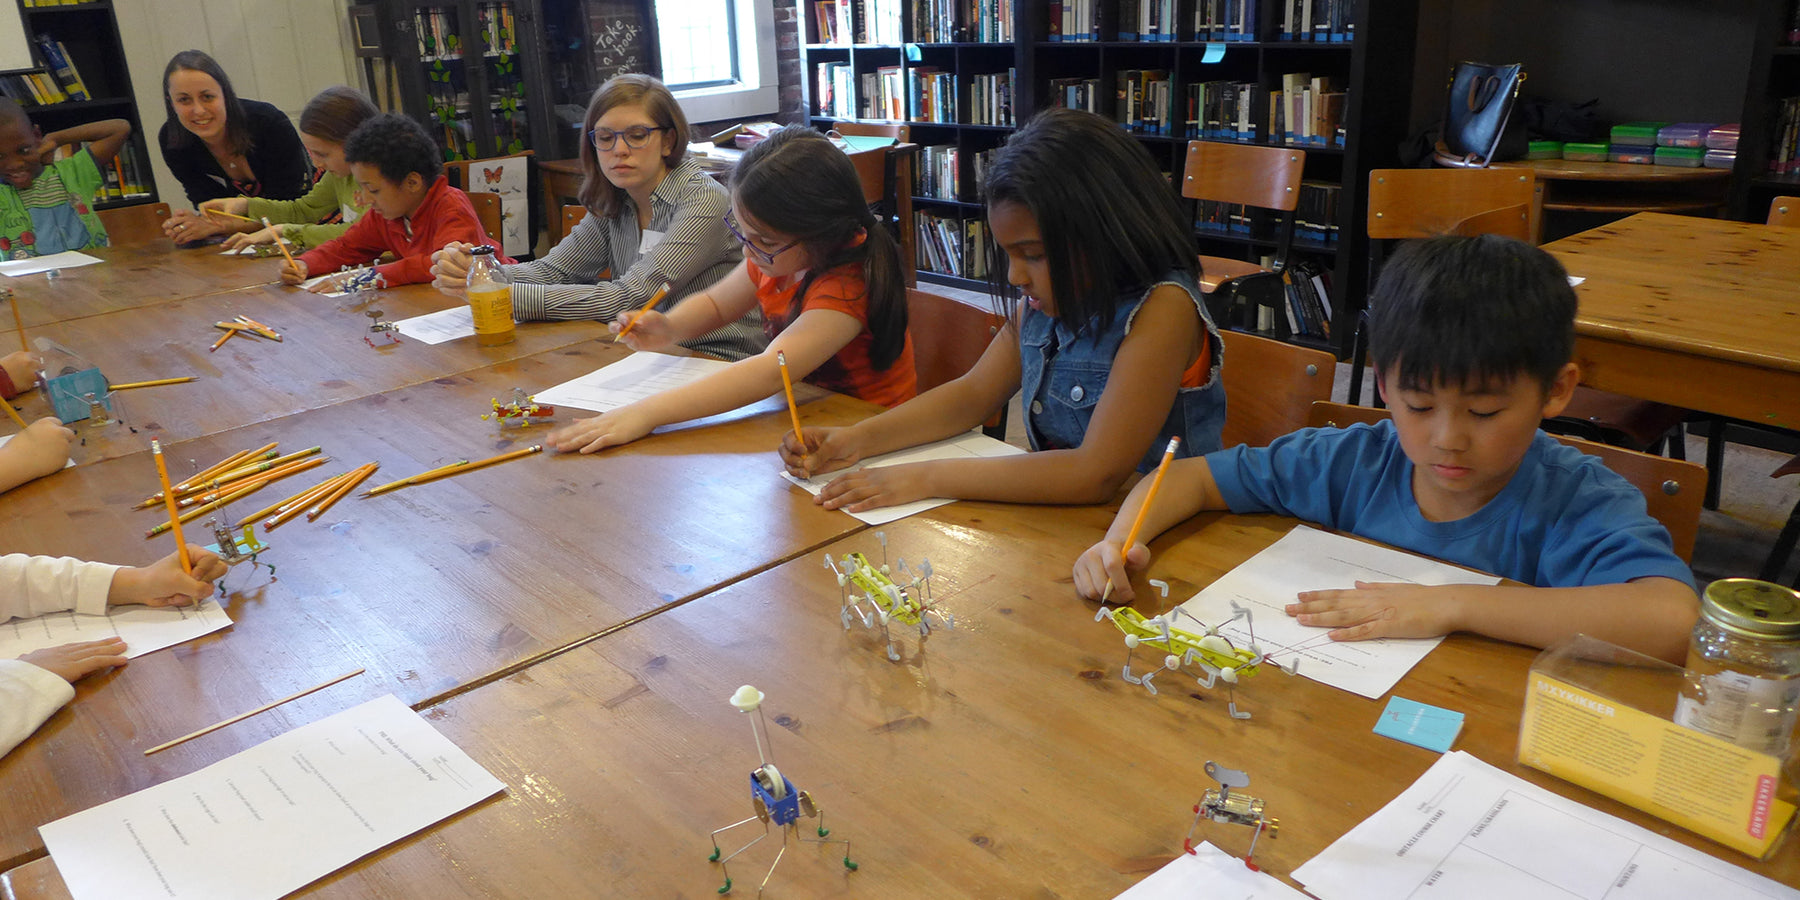 A BUG'S WORLD: KIKKERLAND SPONSORS A CREATIVE WRITING AND CRAFT WORKSHOP FOR STUDENTS